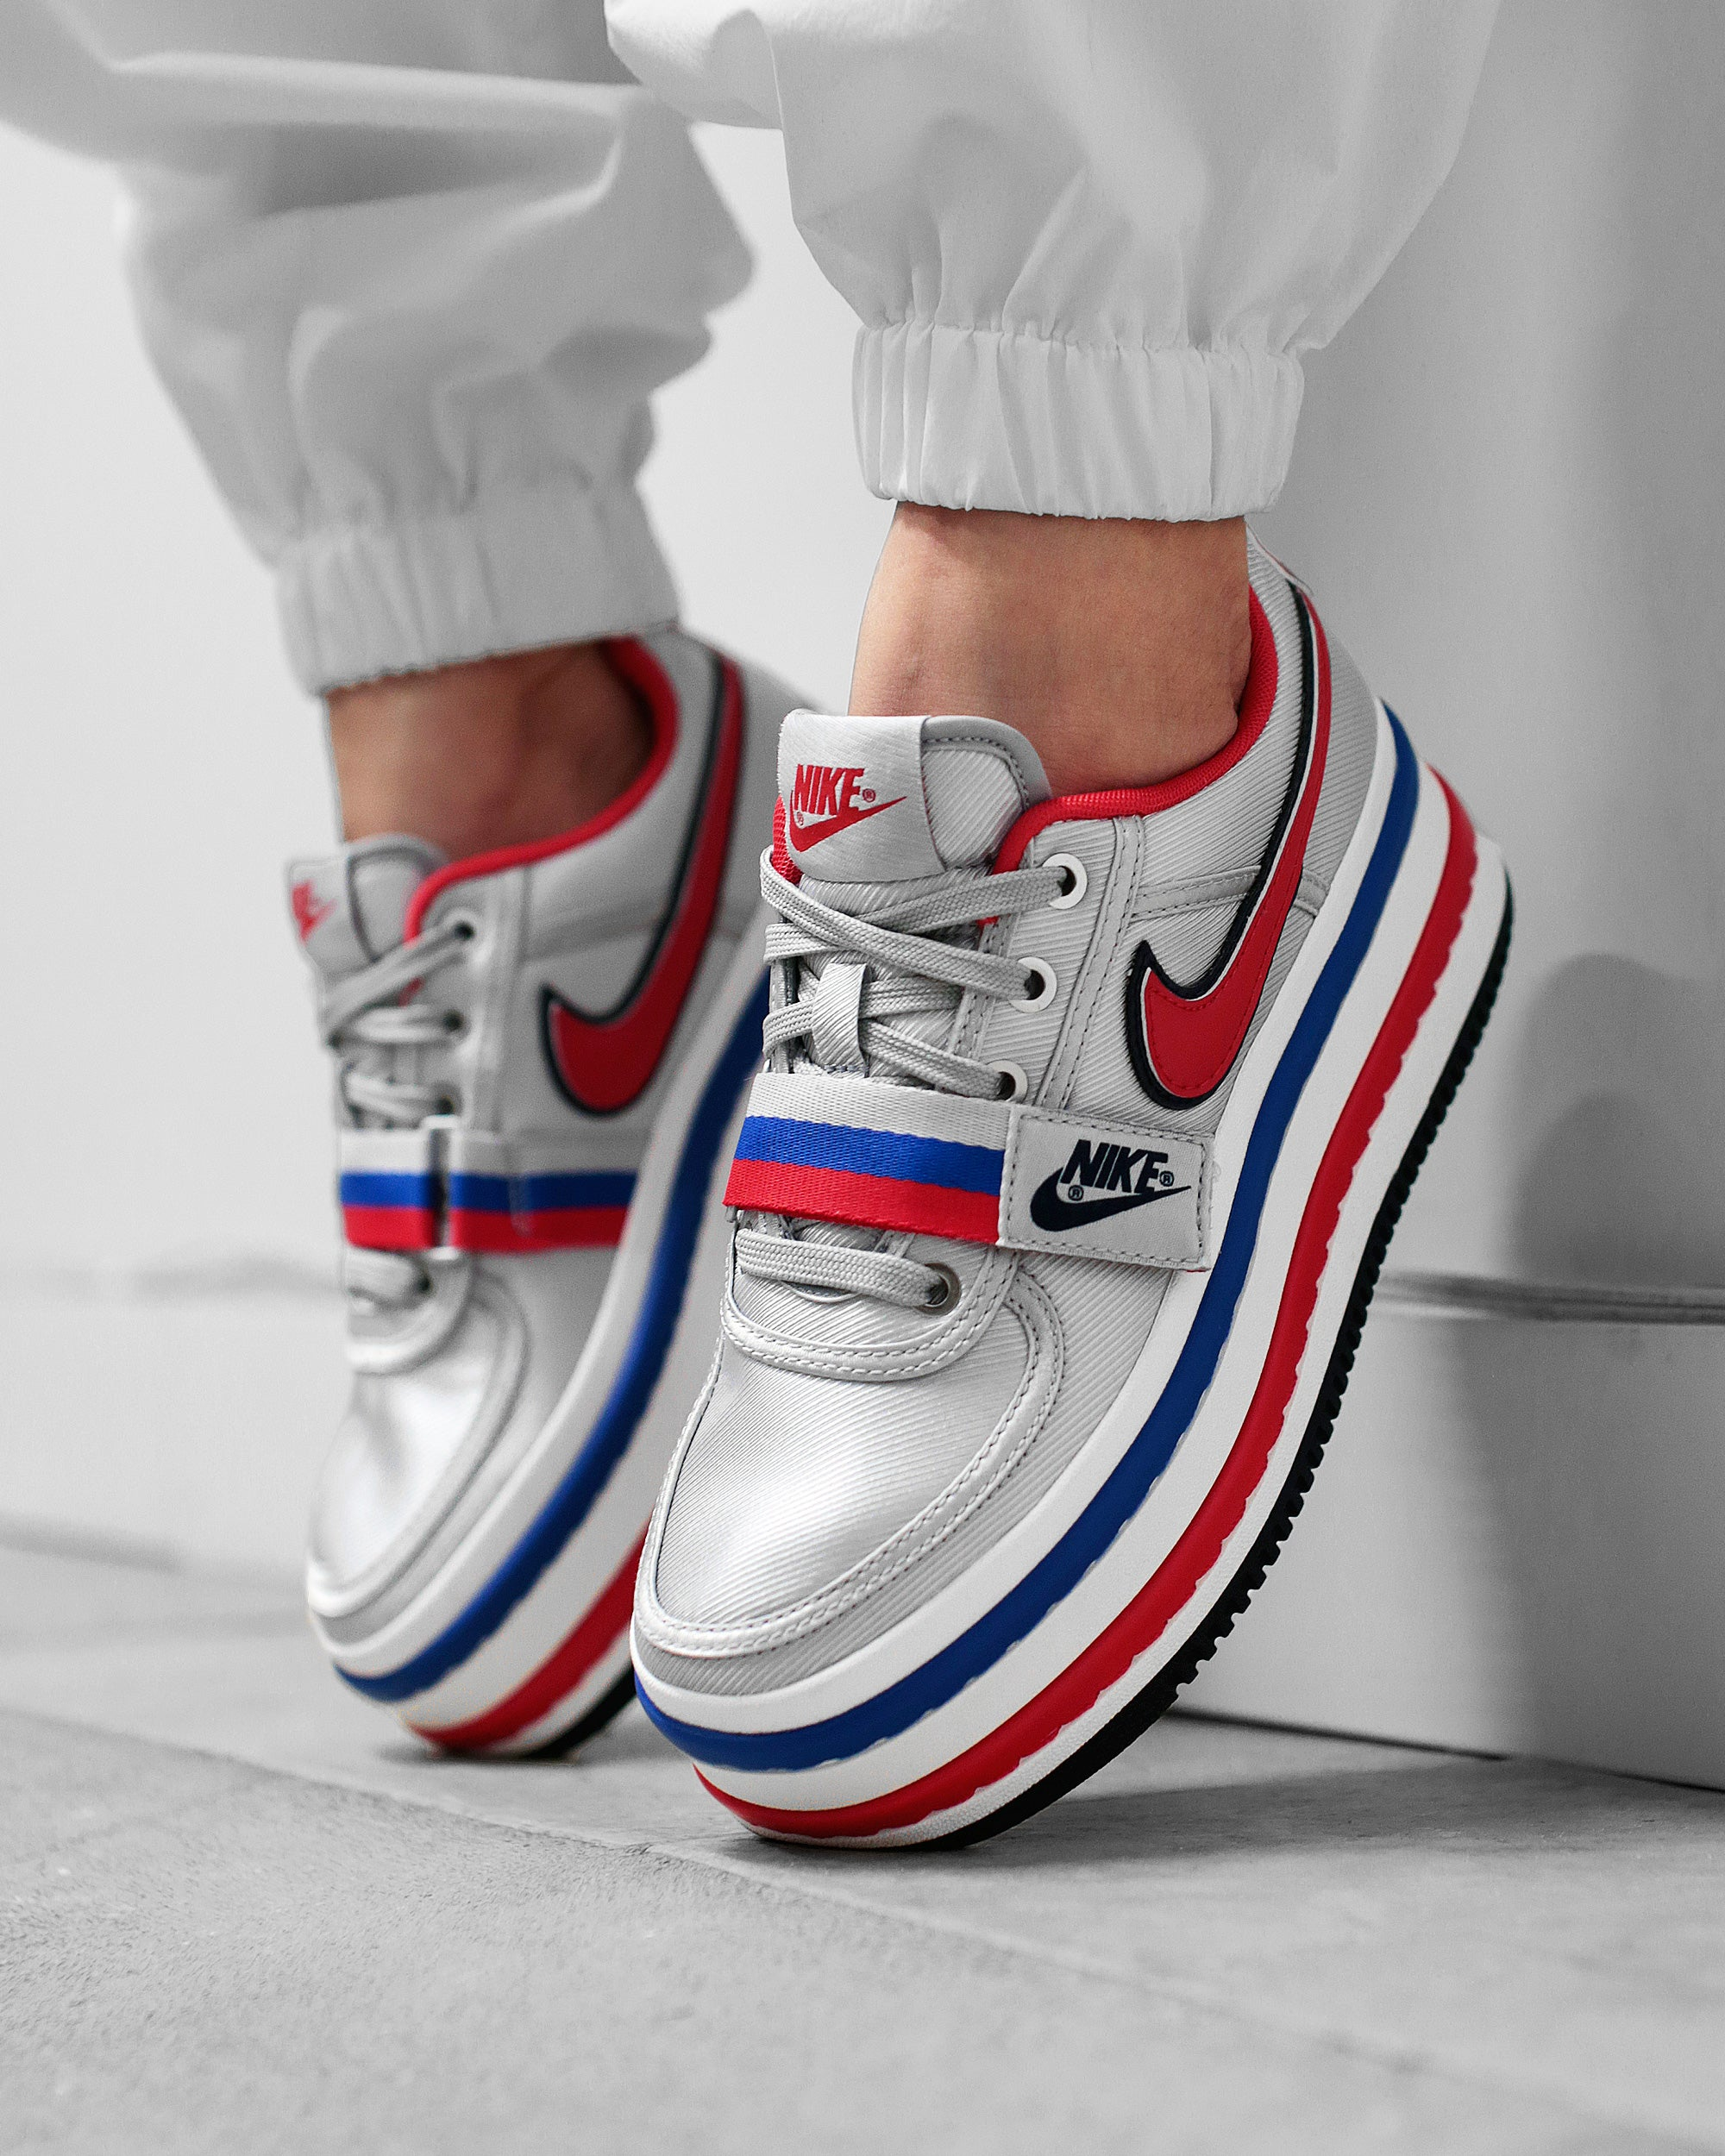 """buy online f5bff 8132e The Nike Womens Vandal 2K """"Double Stack"""" (120) Releasing Saturday, 55 at  124B Allen Street. First come, first serve."""